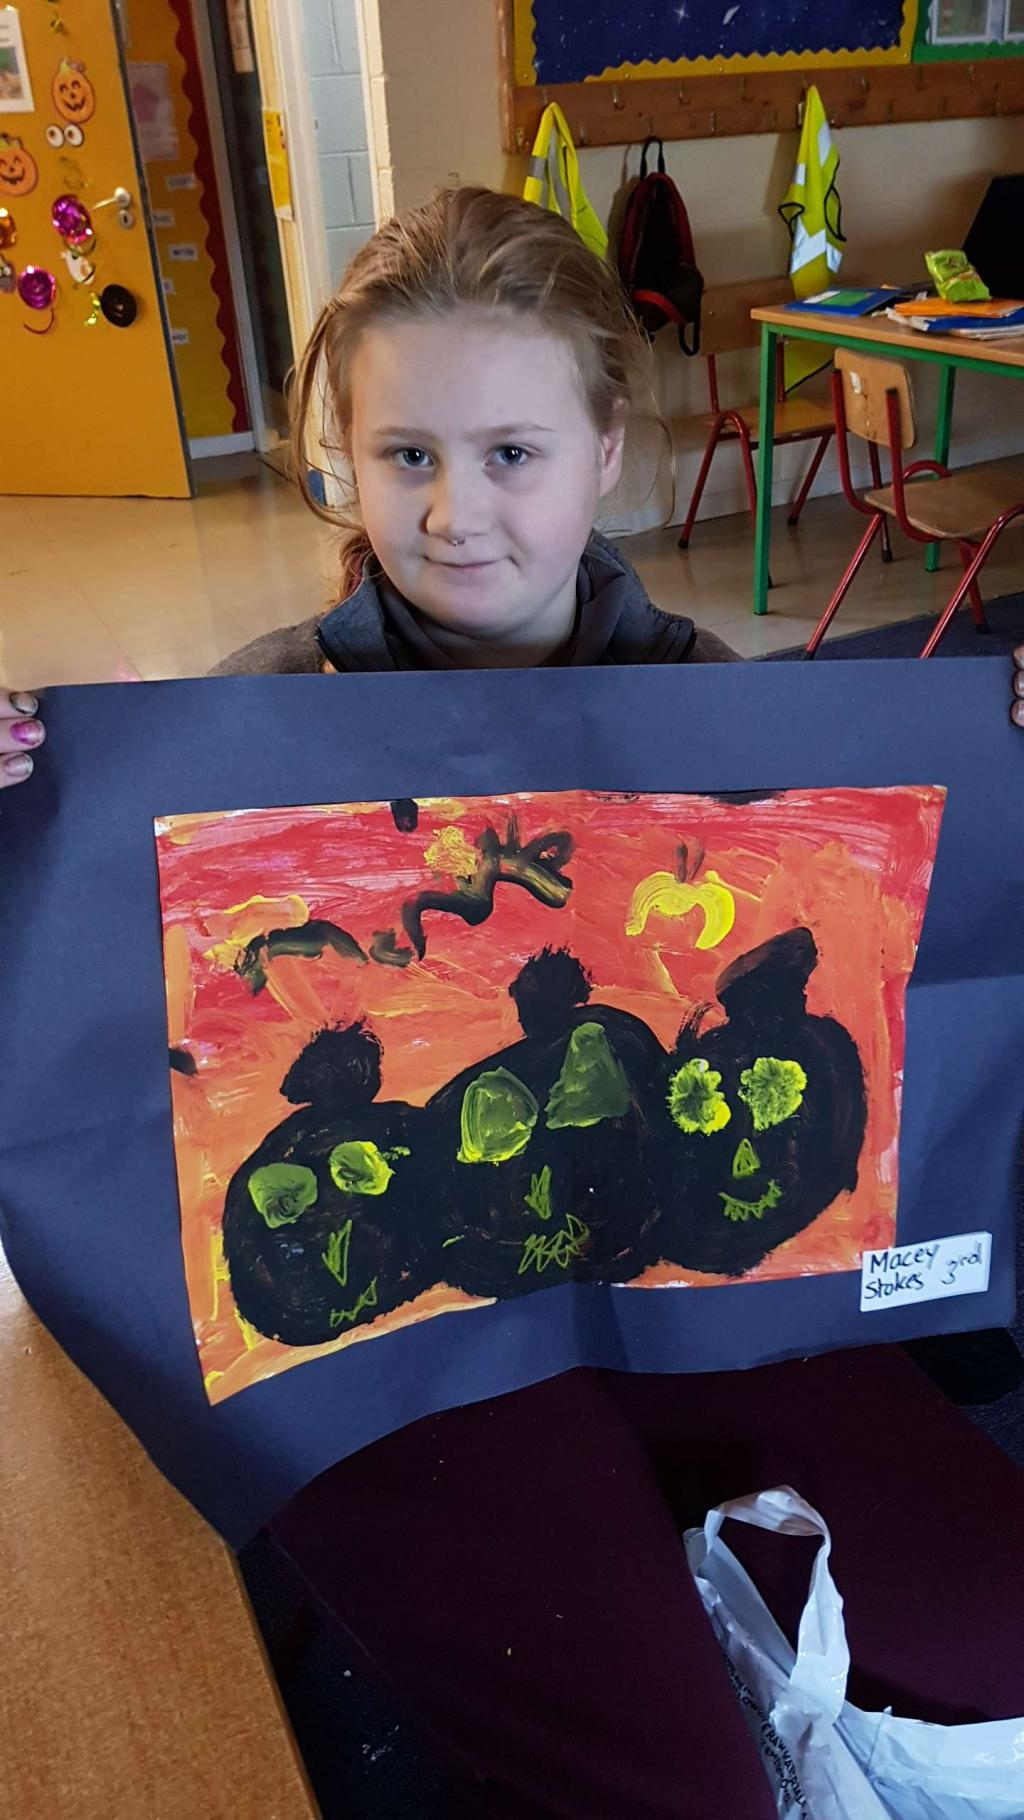 Halloween Art in MsMacRory's & Ms Murphy's room